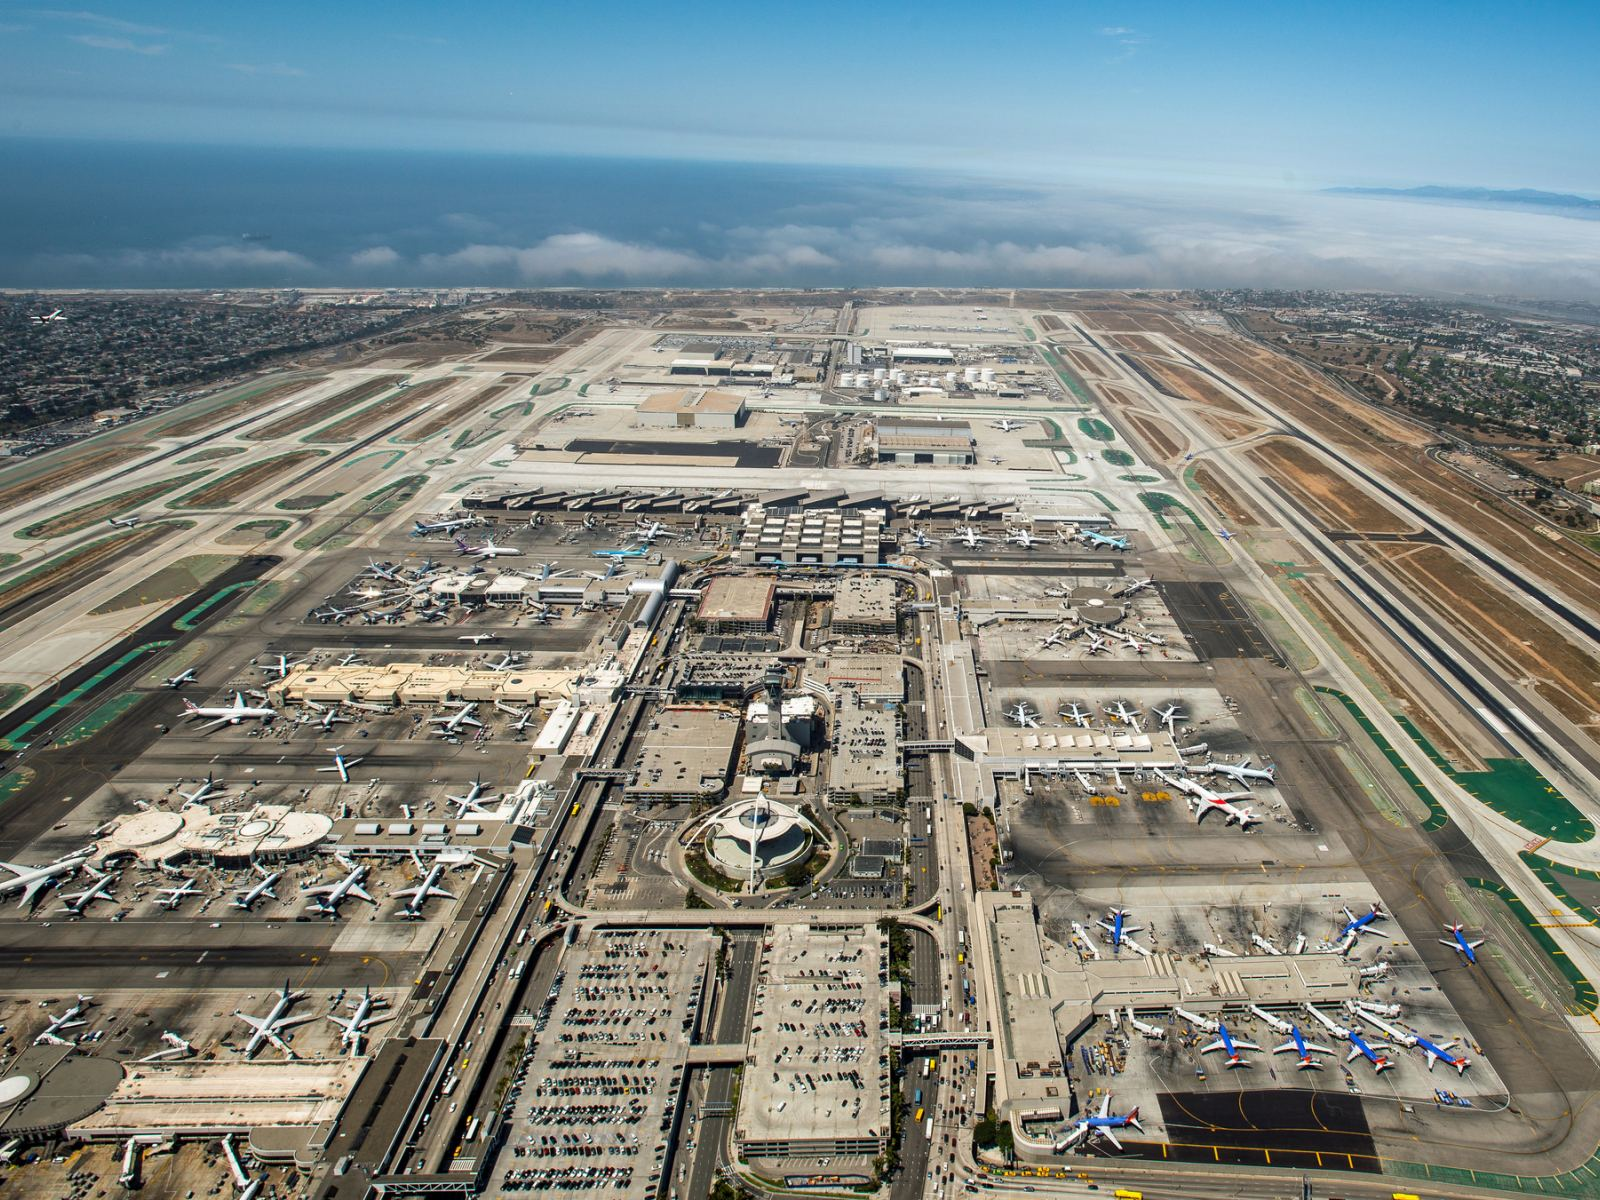 Los Angeles Airport Aerial View